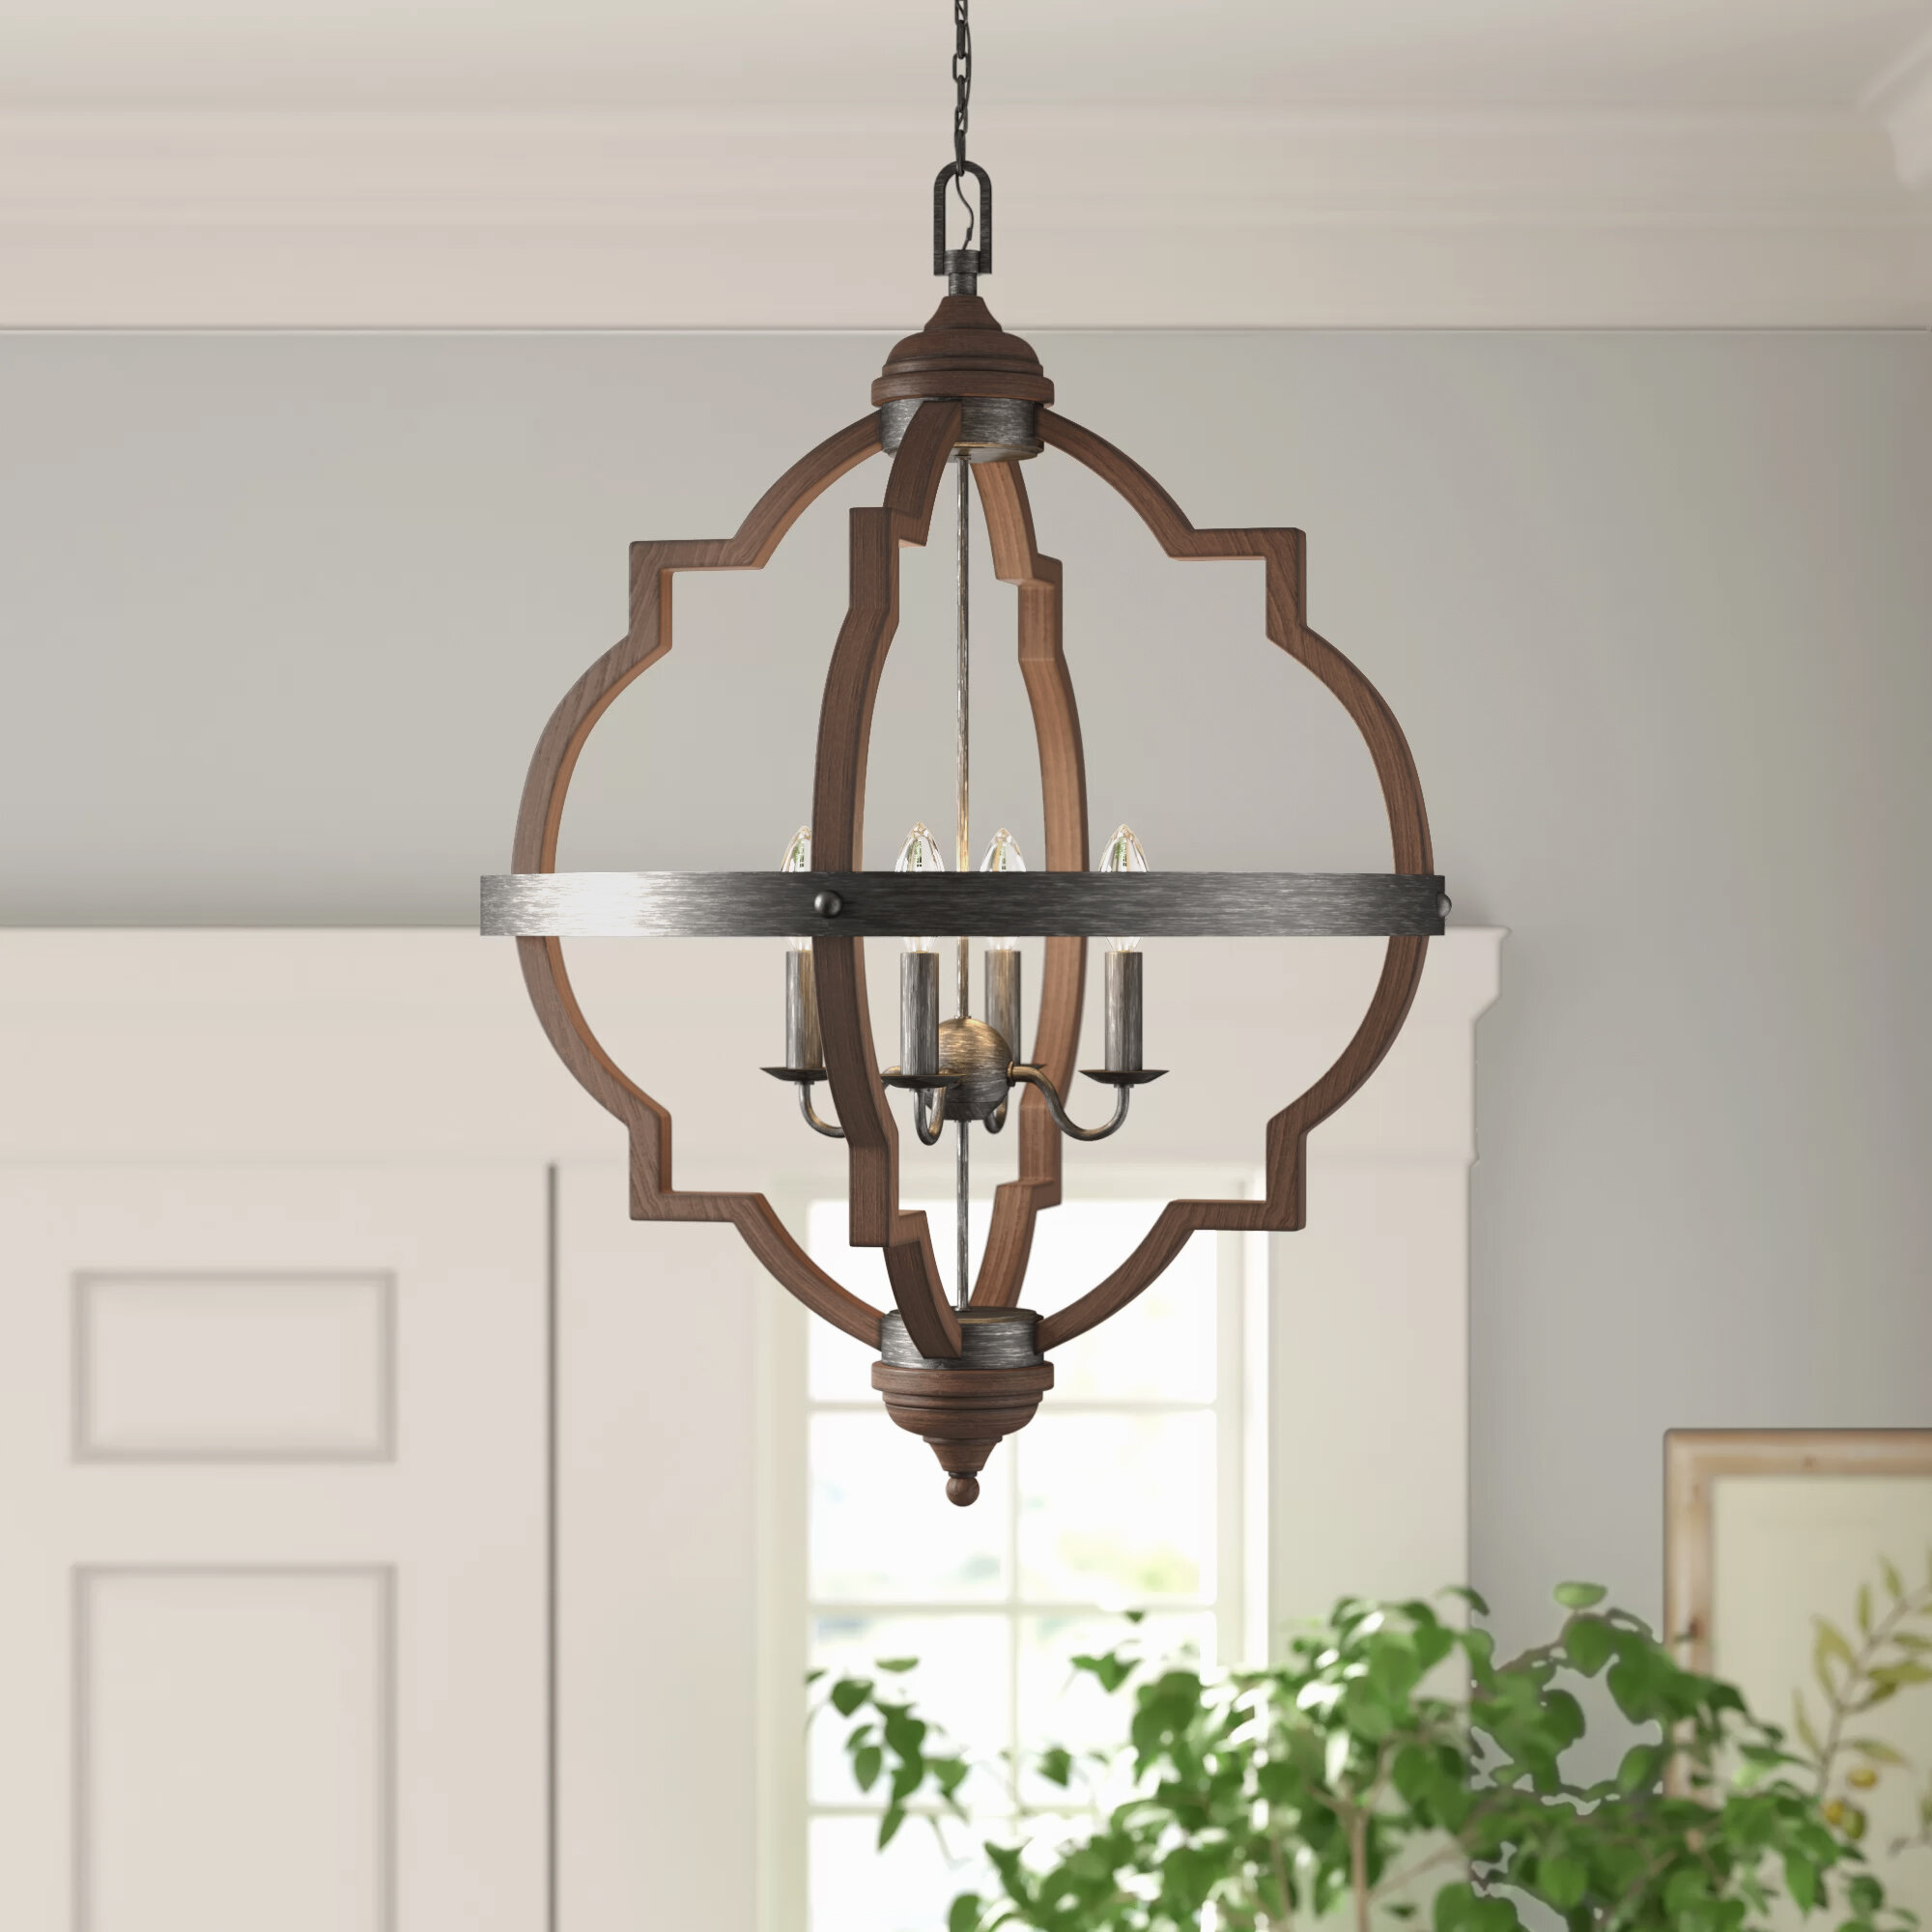 Forney 4 Light Lantern Geometric Chandelier Reviews Birch Lane